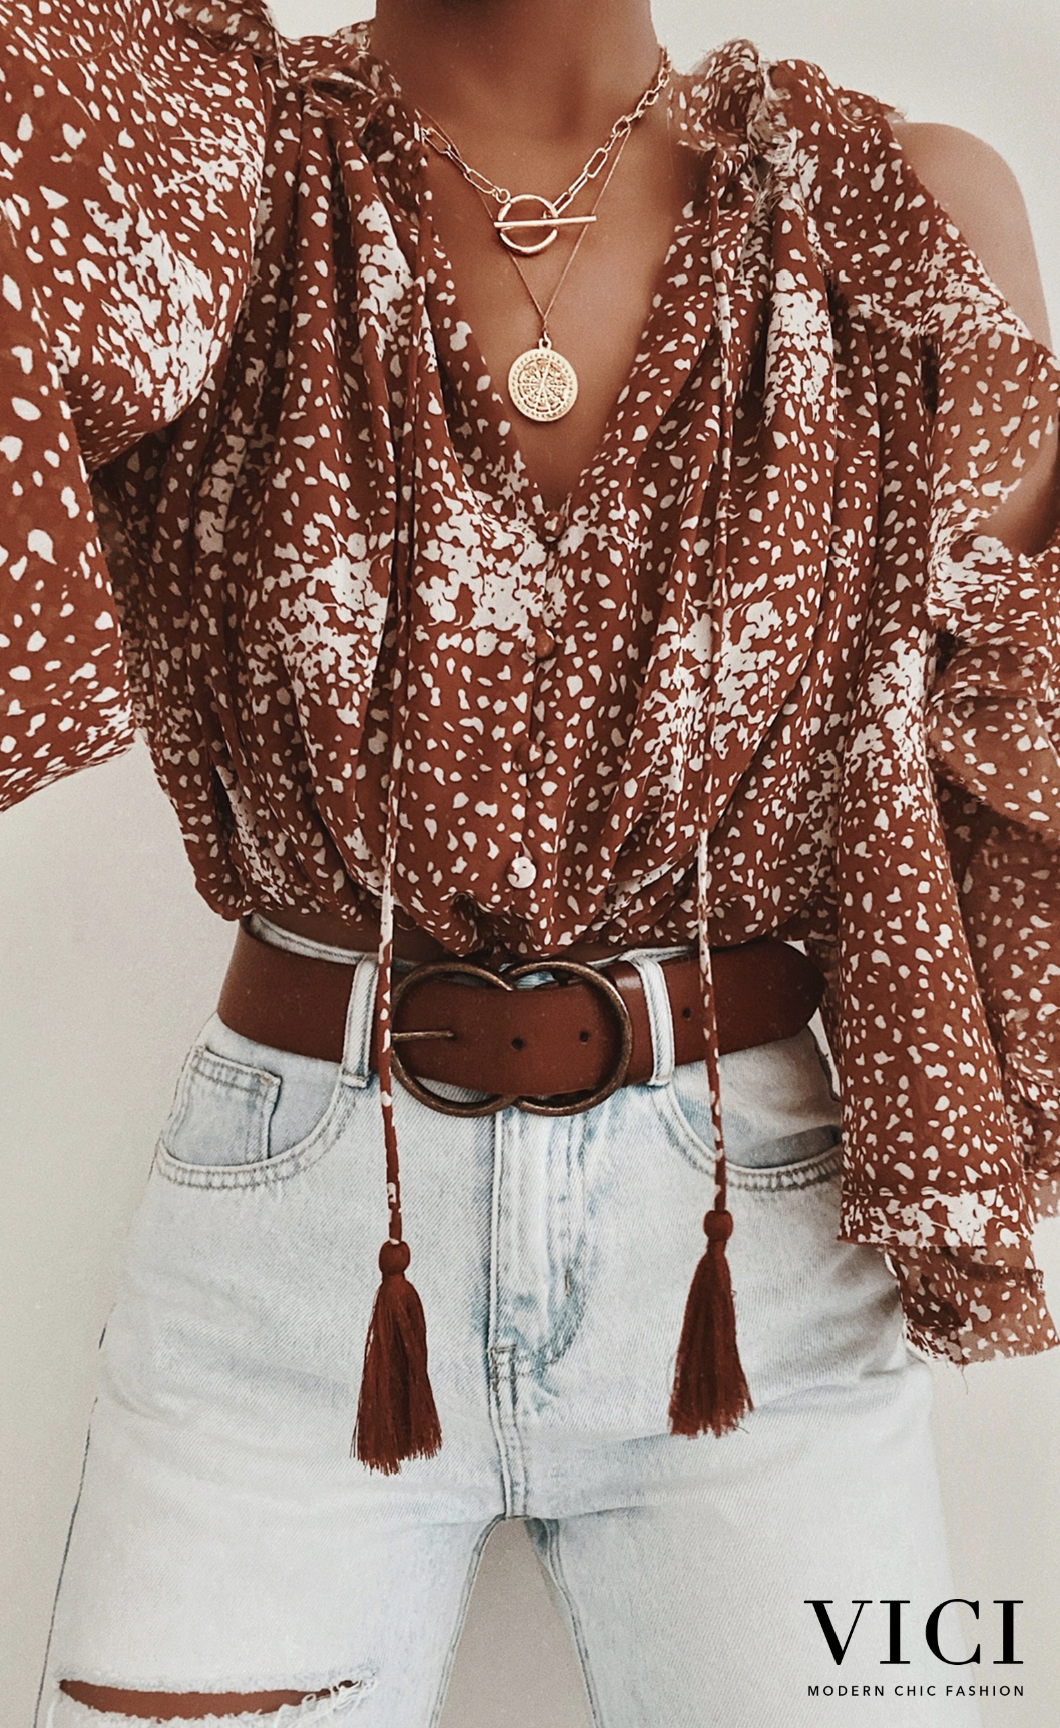 Pin by Kylie Pommier on I need to go shopping in 2020 | Fashion